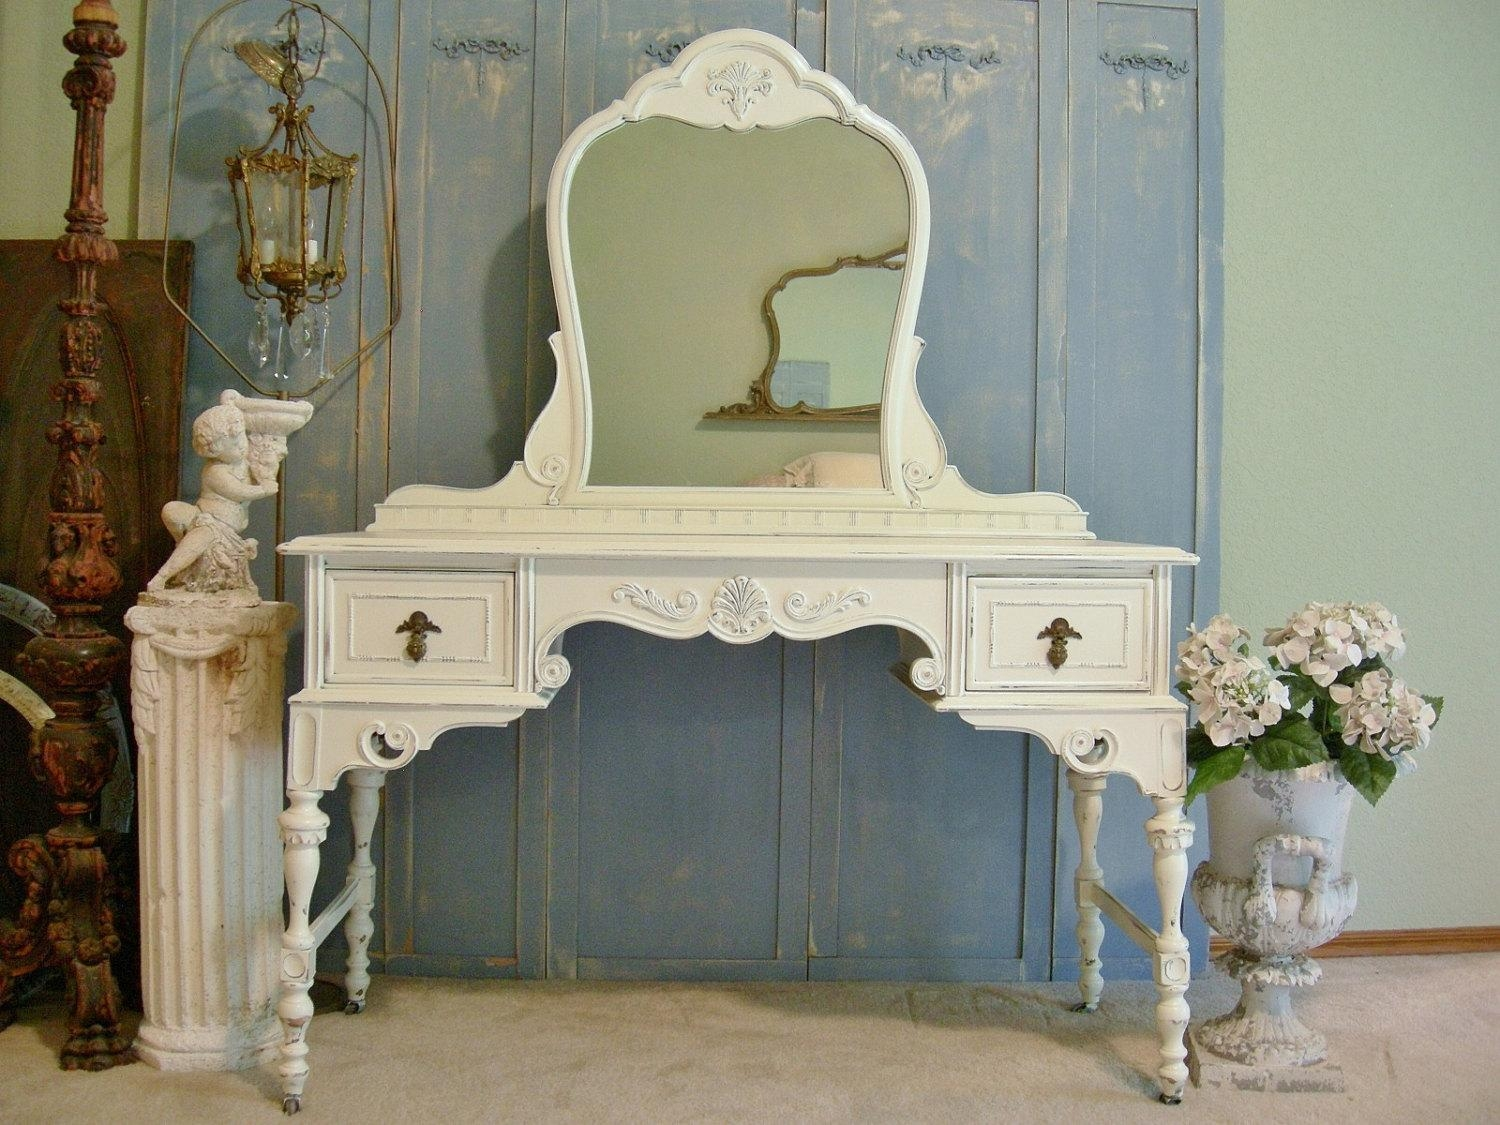 25 Cozy Shabby Chic Furniture Ideas For Your Home | Top Home Designs In White Distressed Mirror Shabby Chic (View 7 of 20)